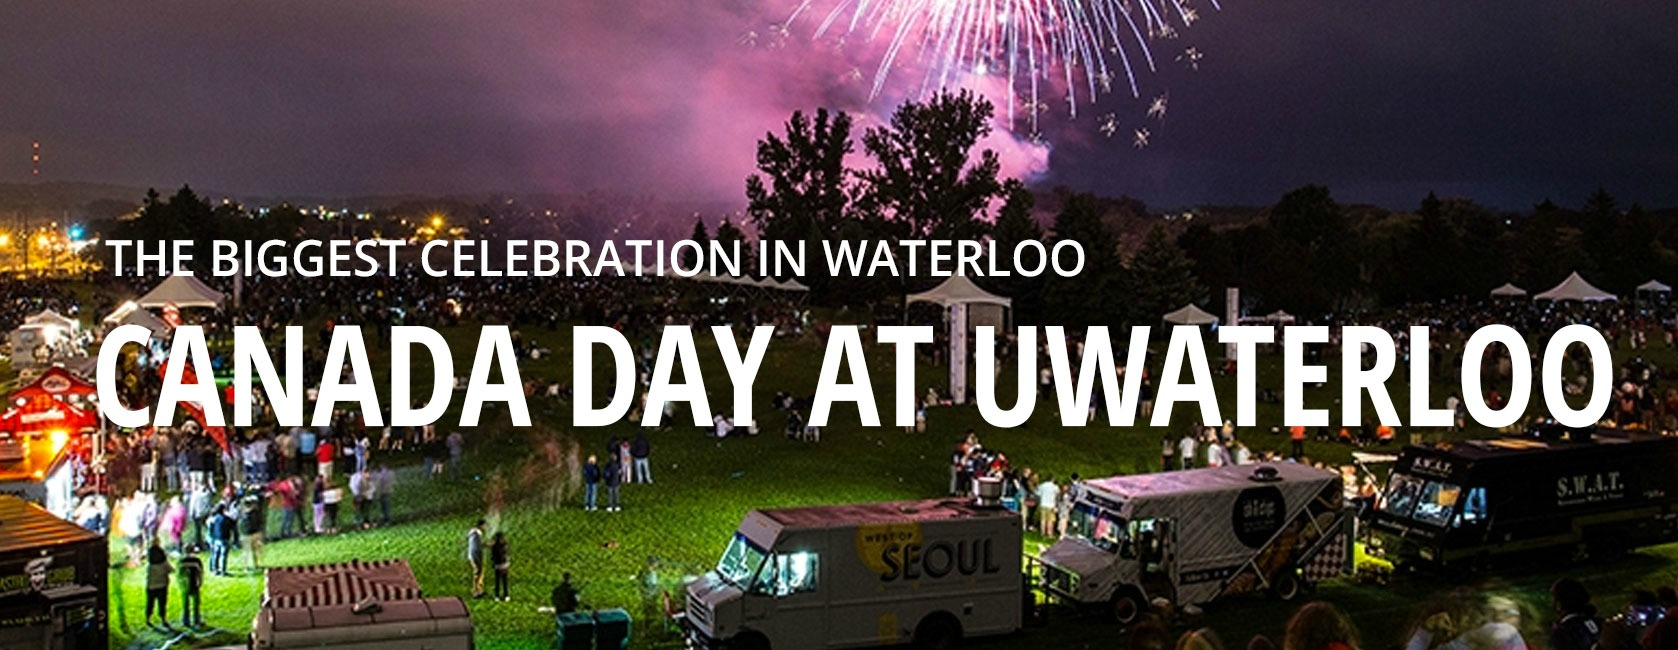 The biggest celebration in Waterloo, Canada Day at UWaterloo